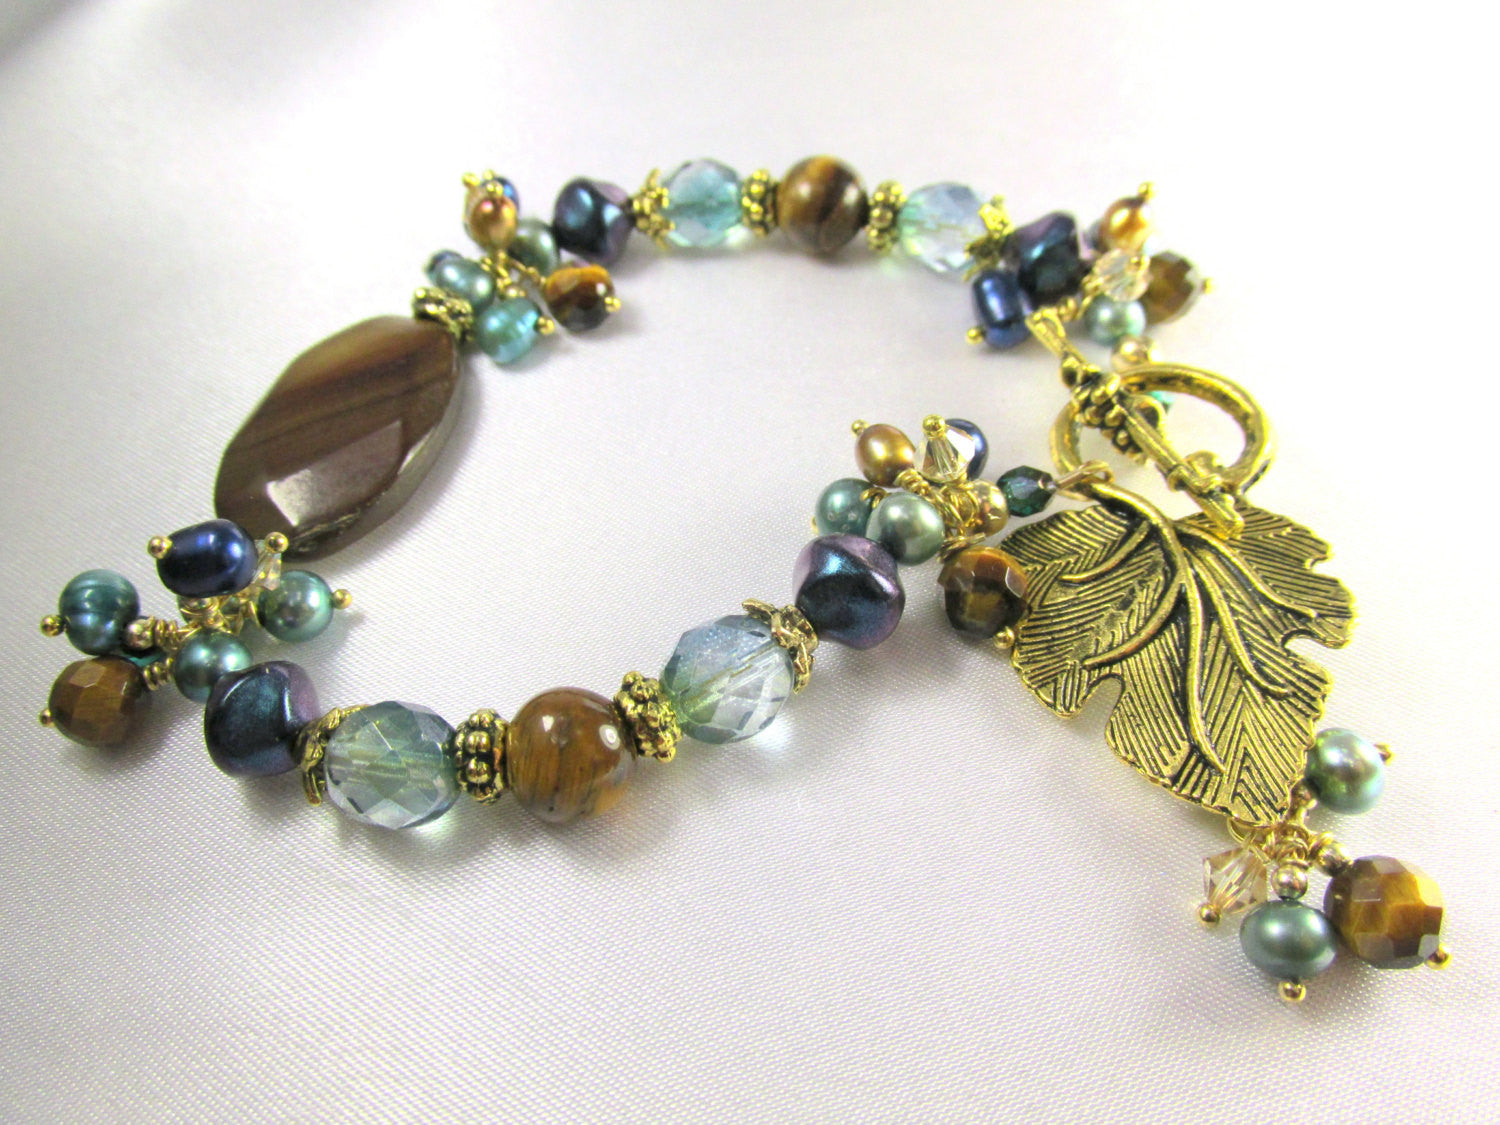 Peacock Freshwater Pearls in Aqua, Teal Blue and Gold with Brown Tigers Eye, Czech glass and gold leaf toggle with charms - Odyssey Creations